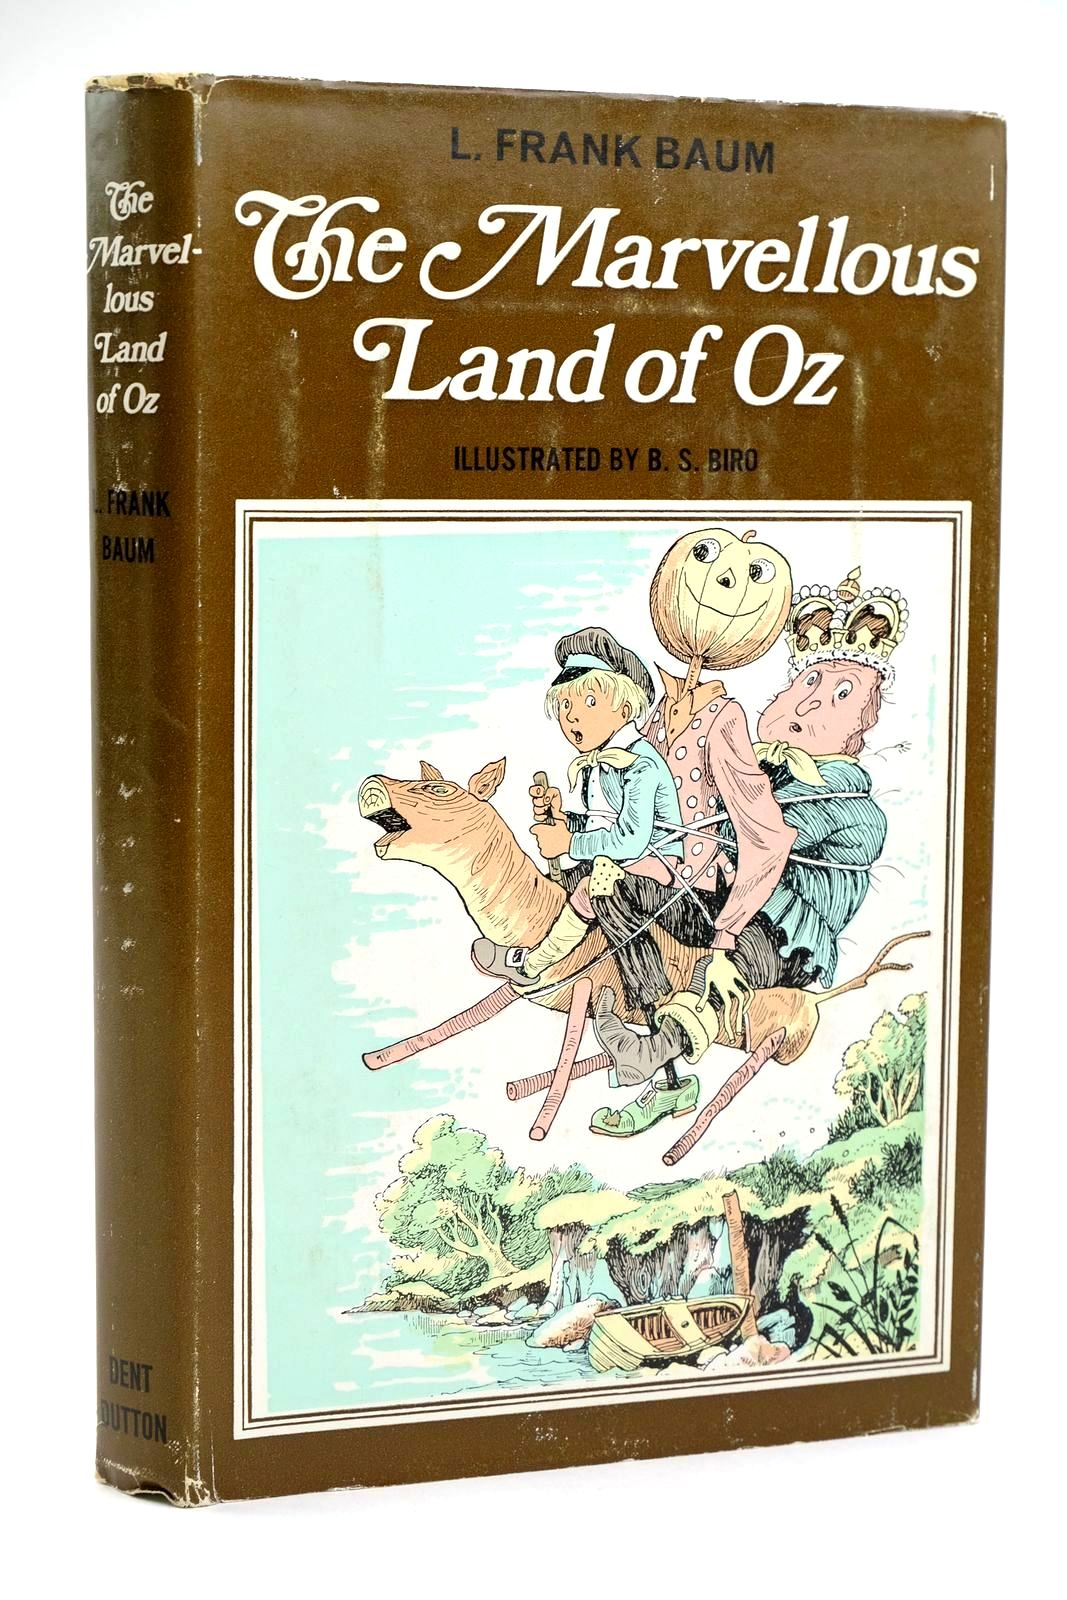 Photo of THE MARVELLOUS LAND OF OZ written by Baum, L. Frank illustrated by Biro, B. published by J.M. Dent & Sons Ltd. (STOCK CODE: 1319181)  for sale by Stella & Rose's Books